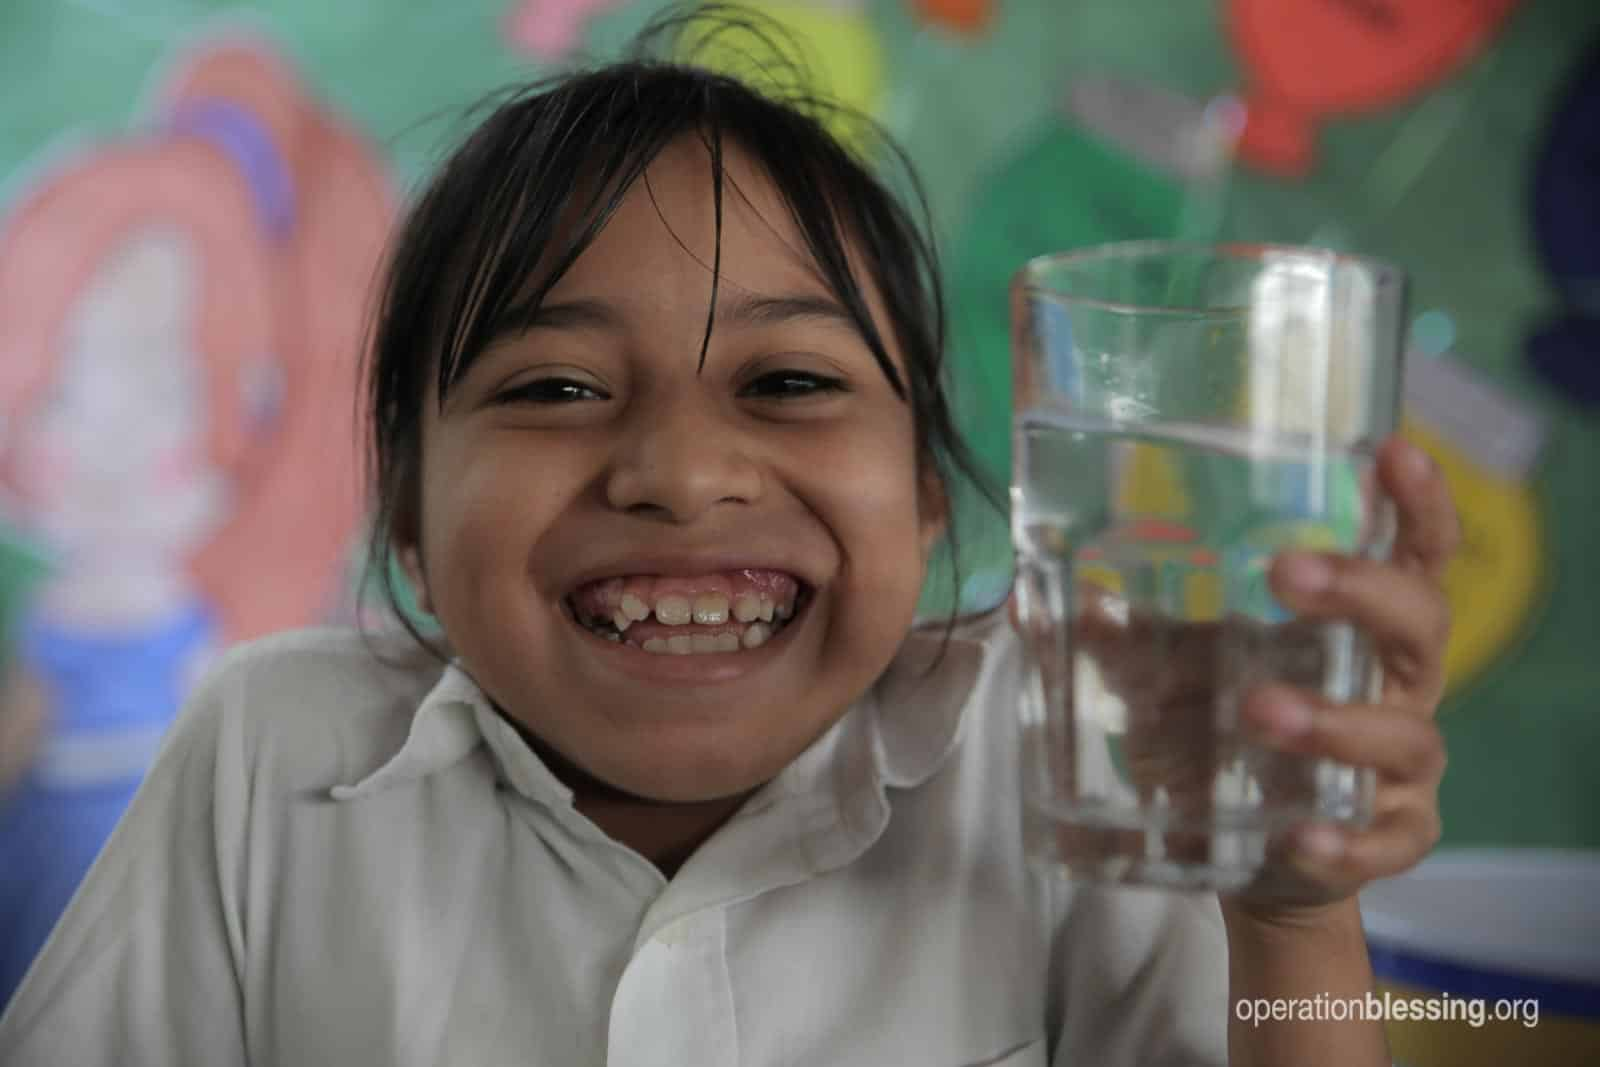 A female student smiles and holds a glass, no longer suffering without clean water.